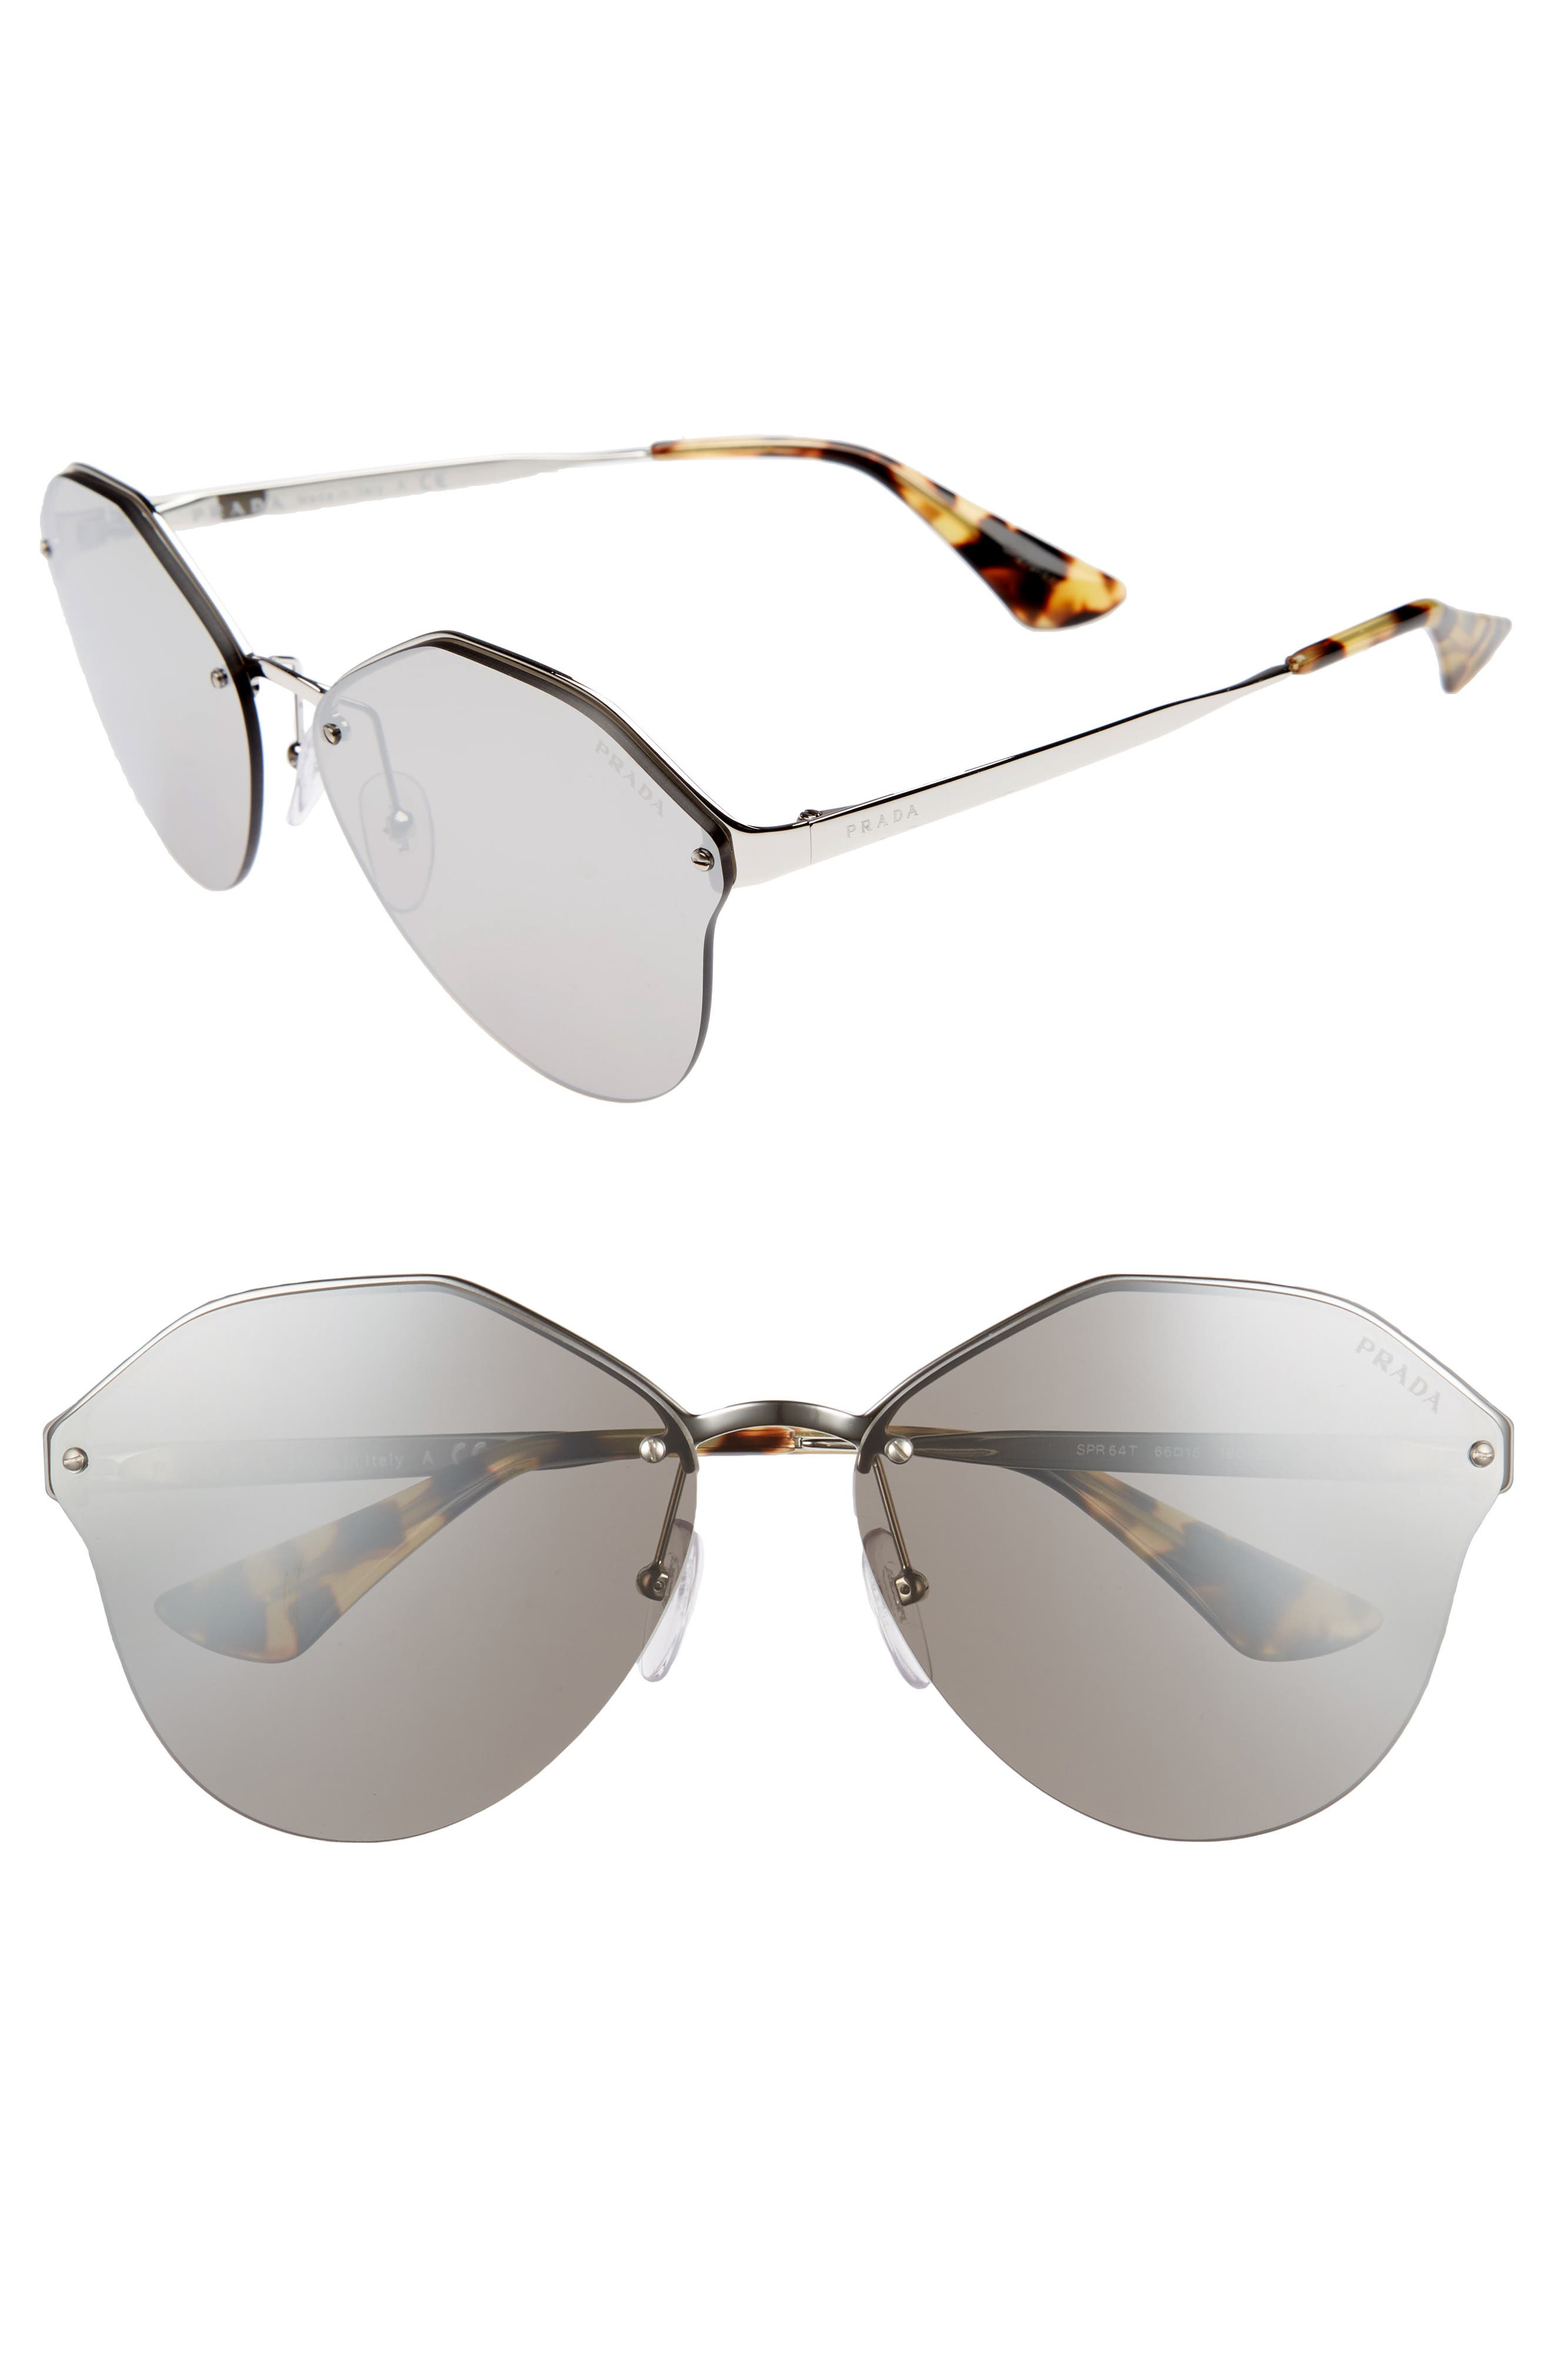 66mm Oversize Rimless Sunglasses,                         Main,                         color, Brown Mirror